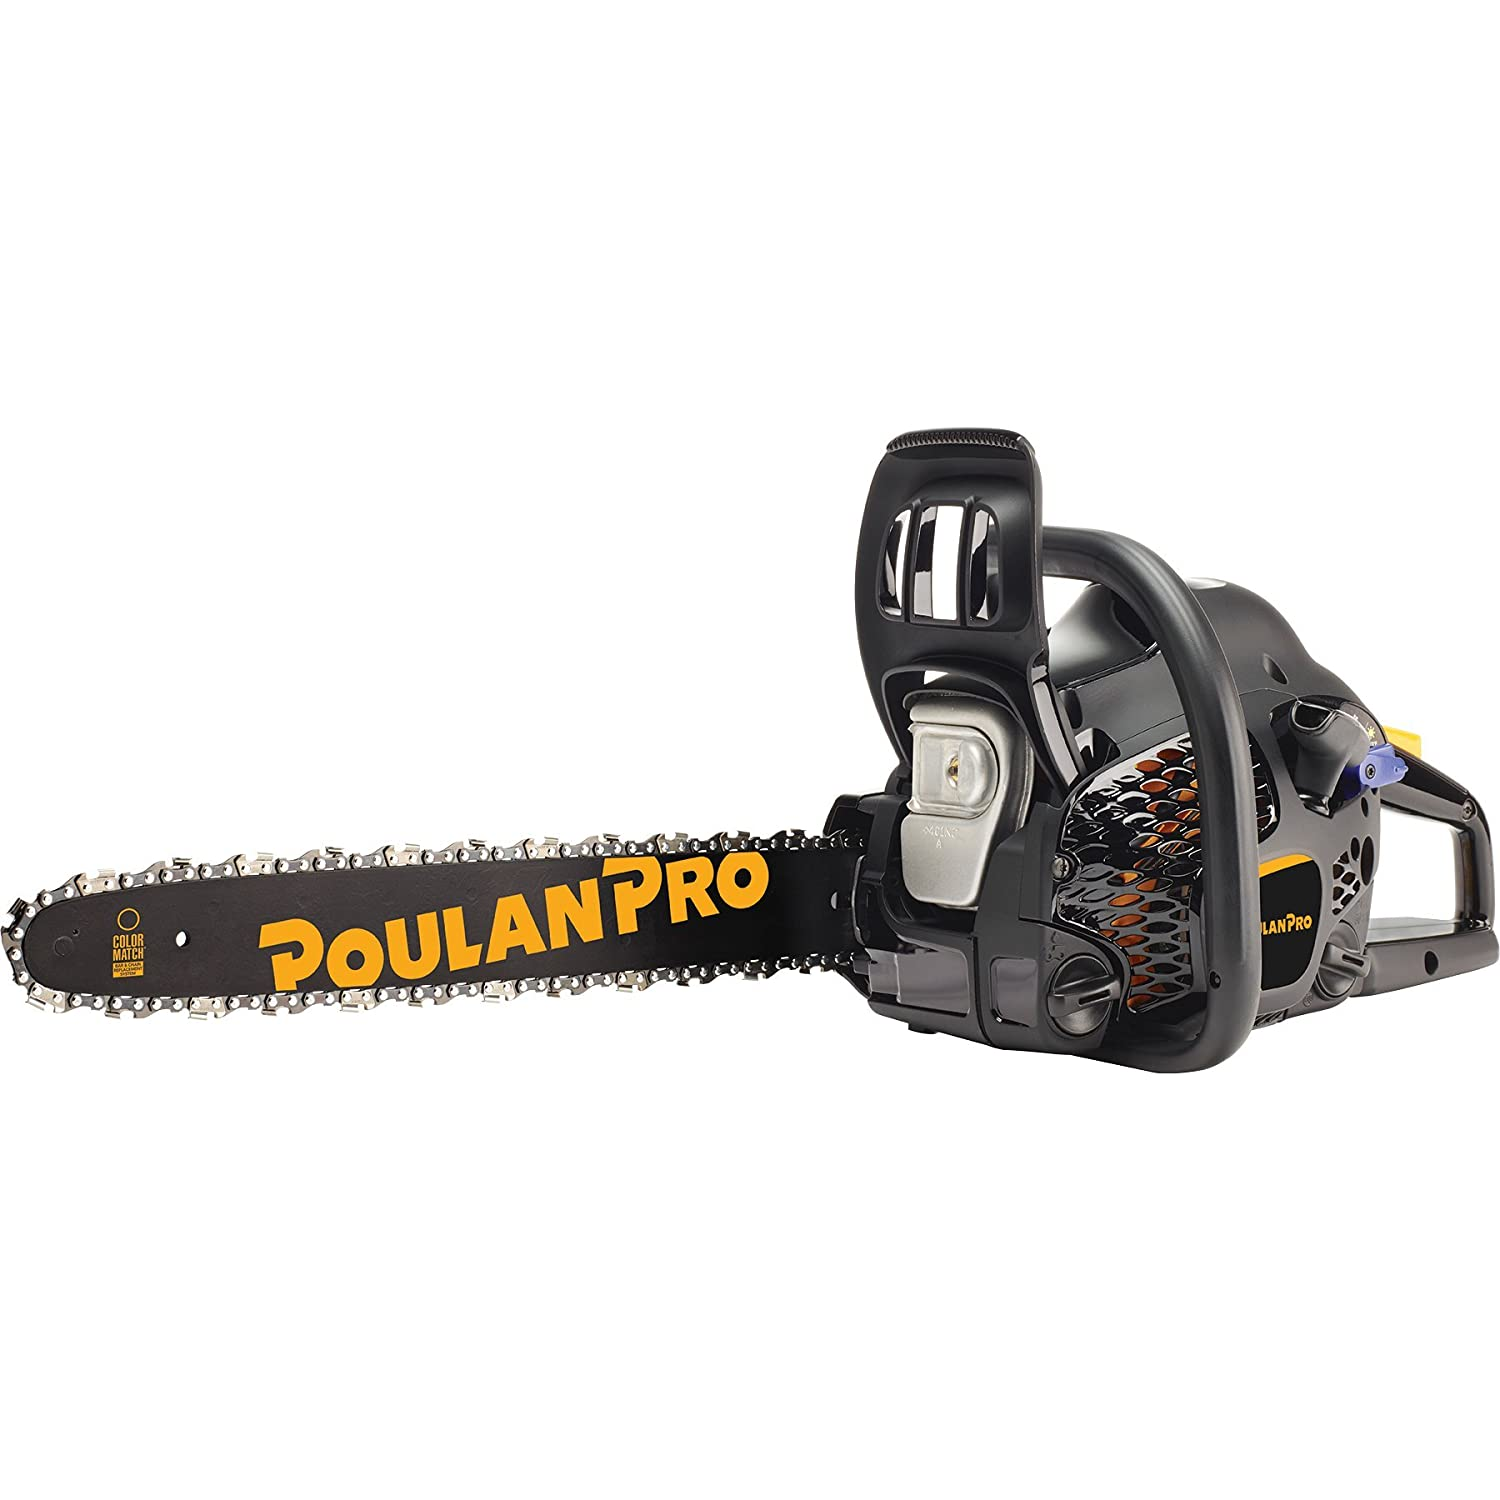 Amazon Com Poulan Pro 18 Inch 2 Cycle Gas Chainsaw Certified